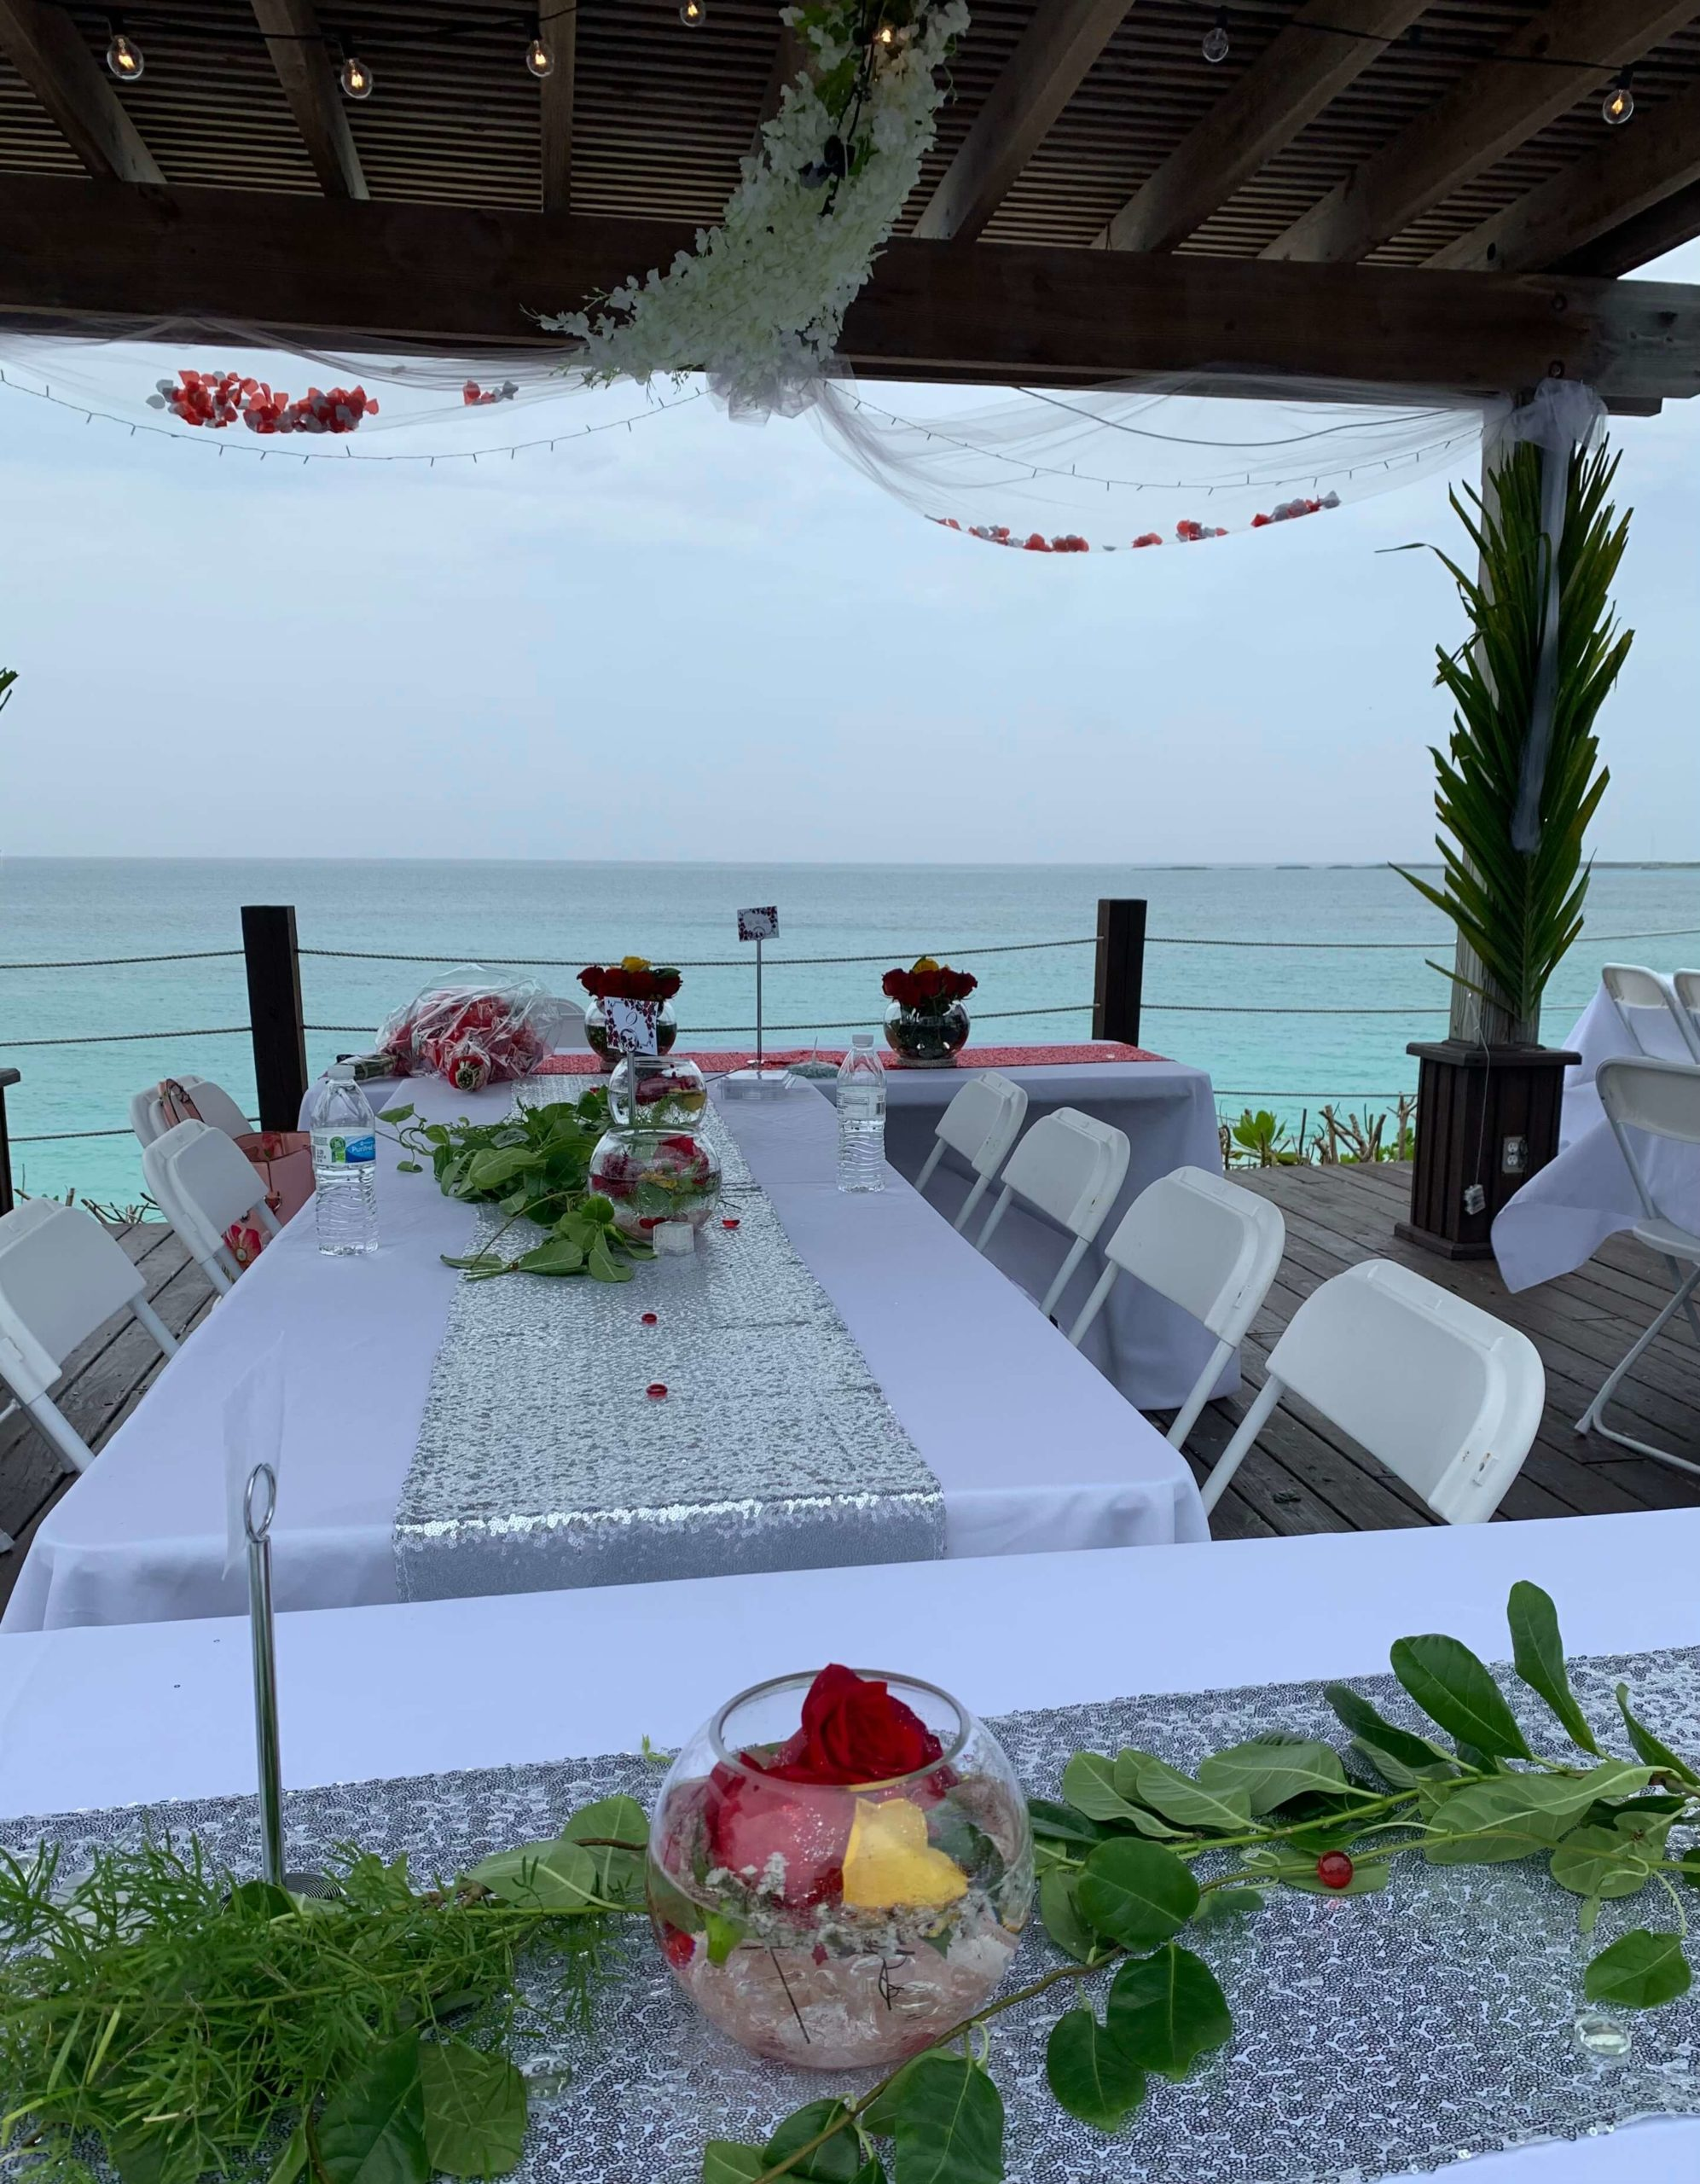 An image of a wedding set up at one of the best party venues in Nassau, Bahamas